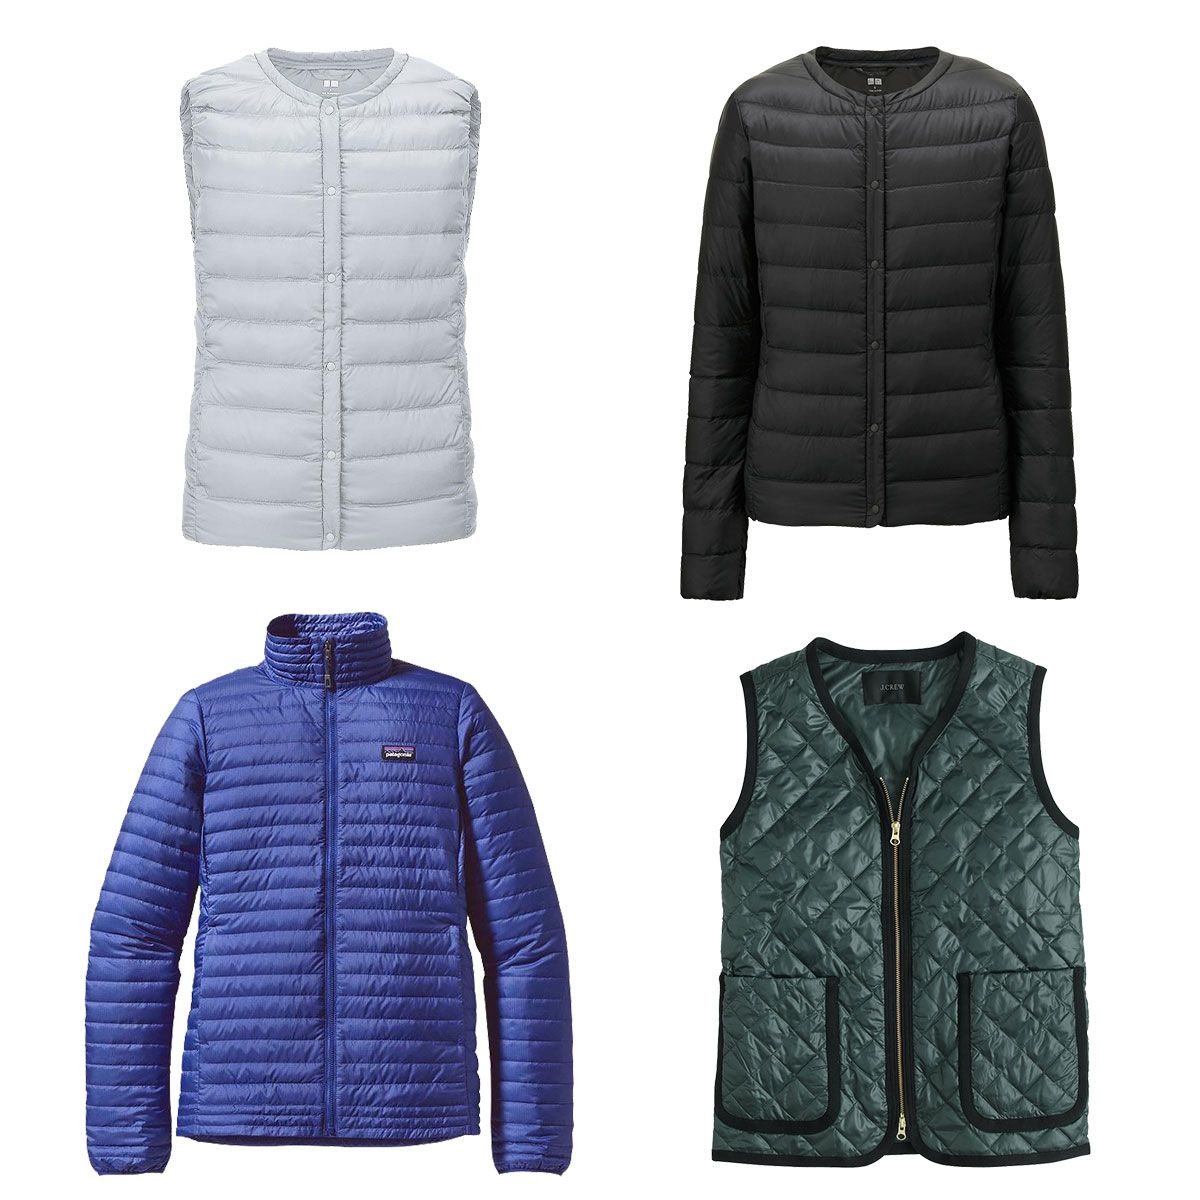 No 5 A Thin Down Puffer For Layering Winter Checklist